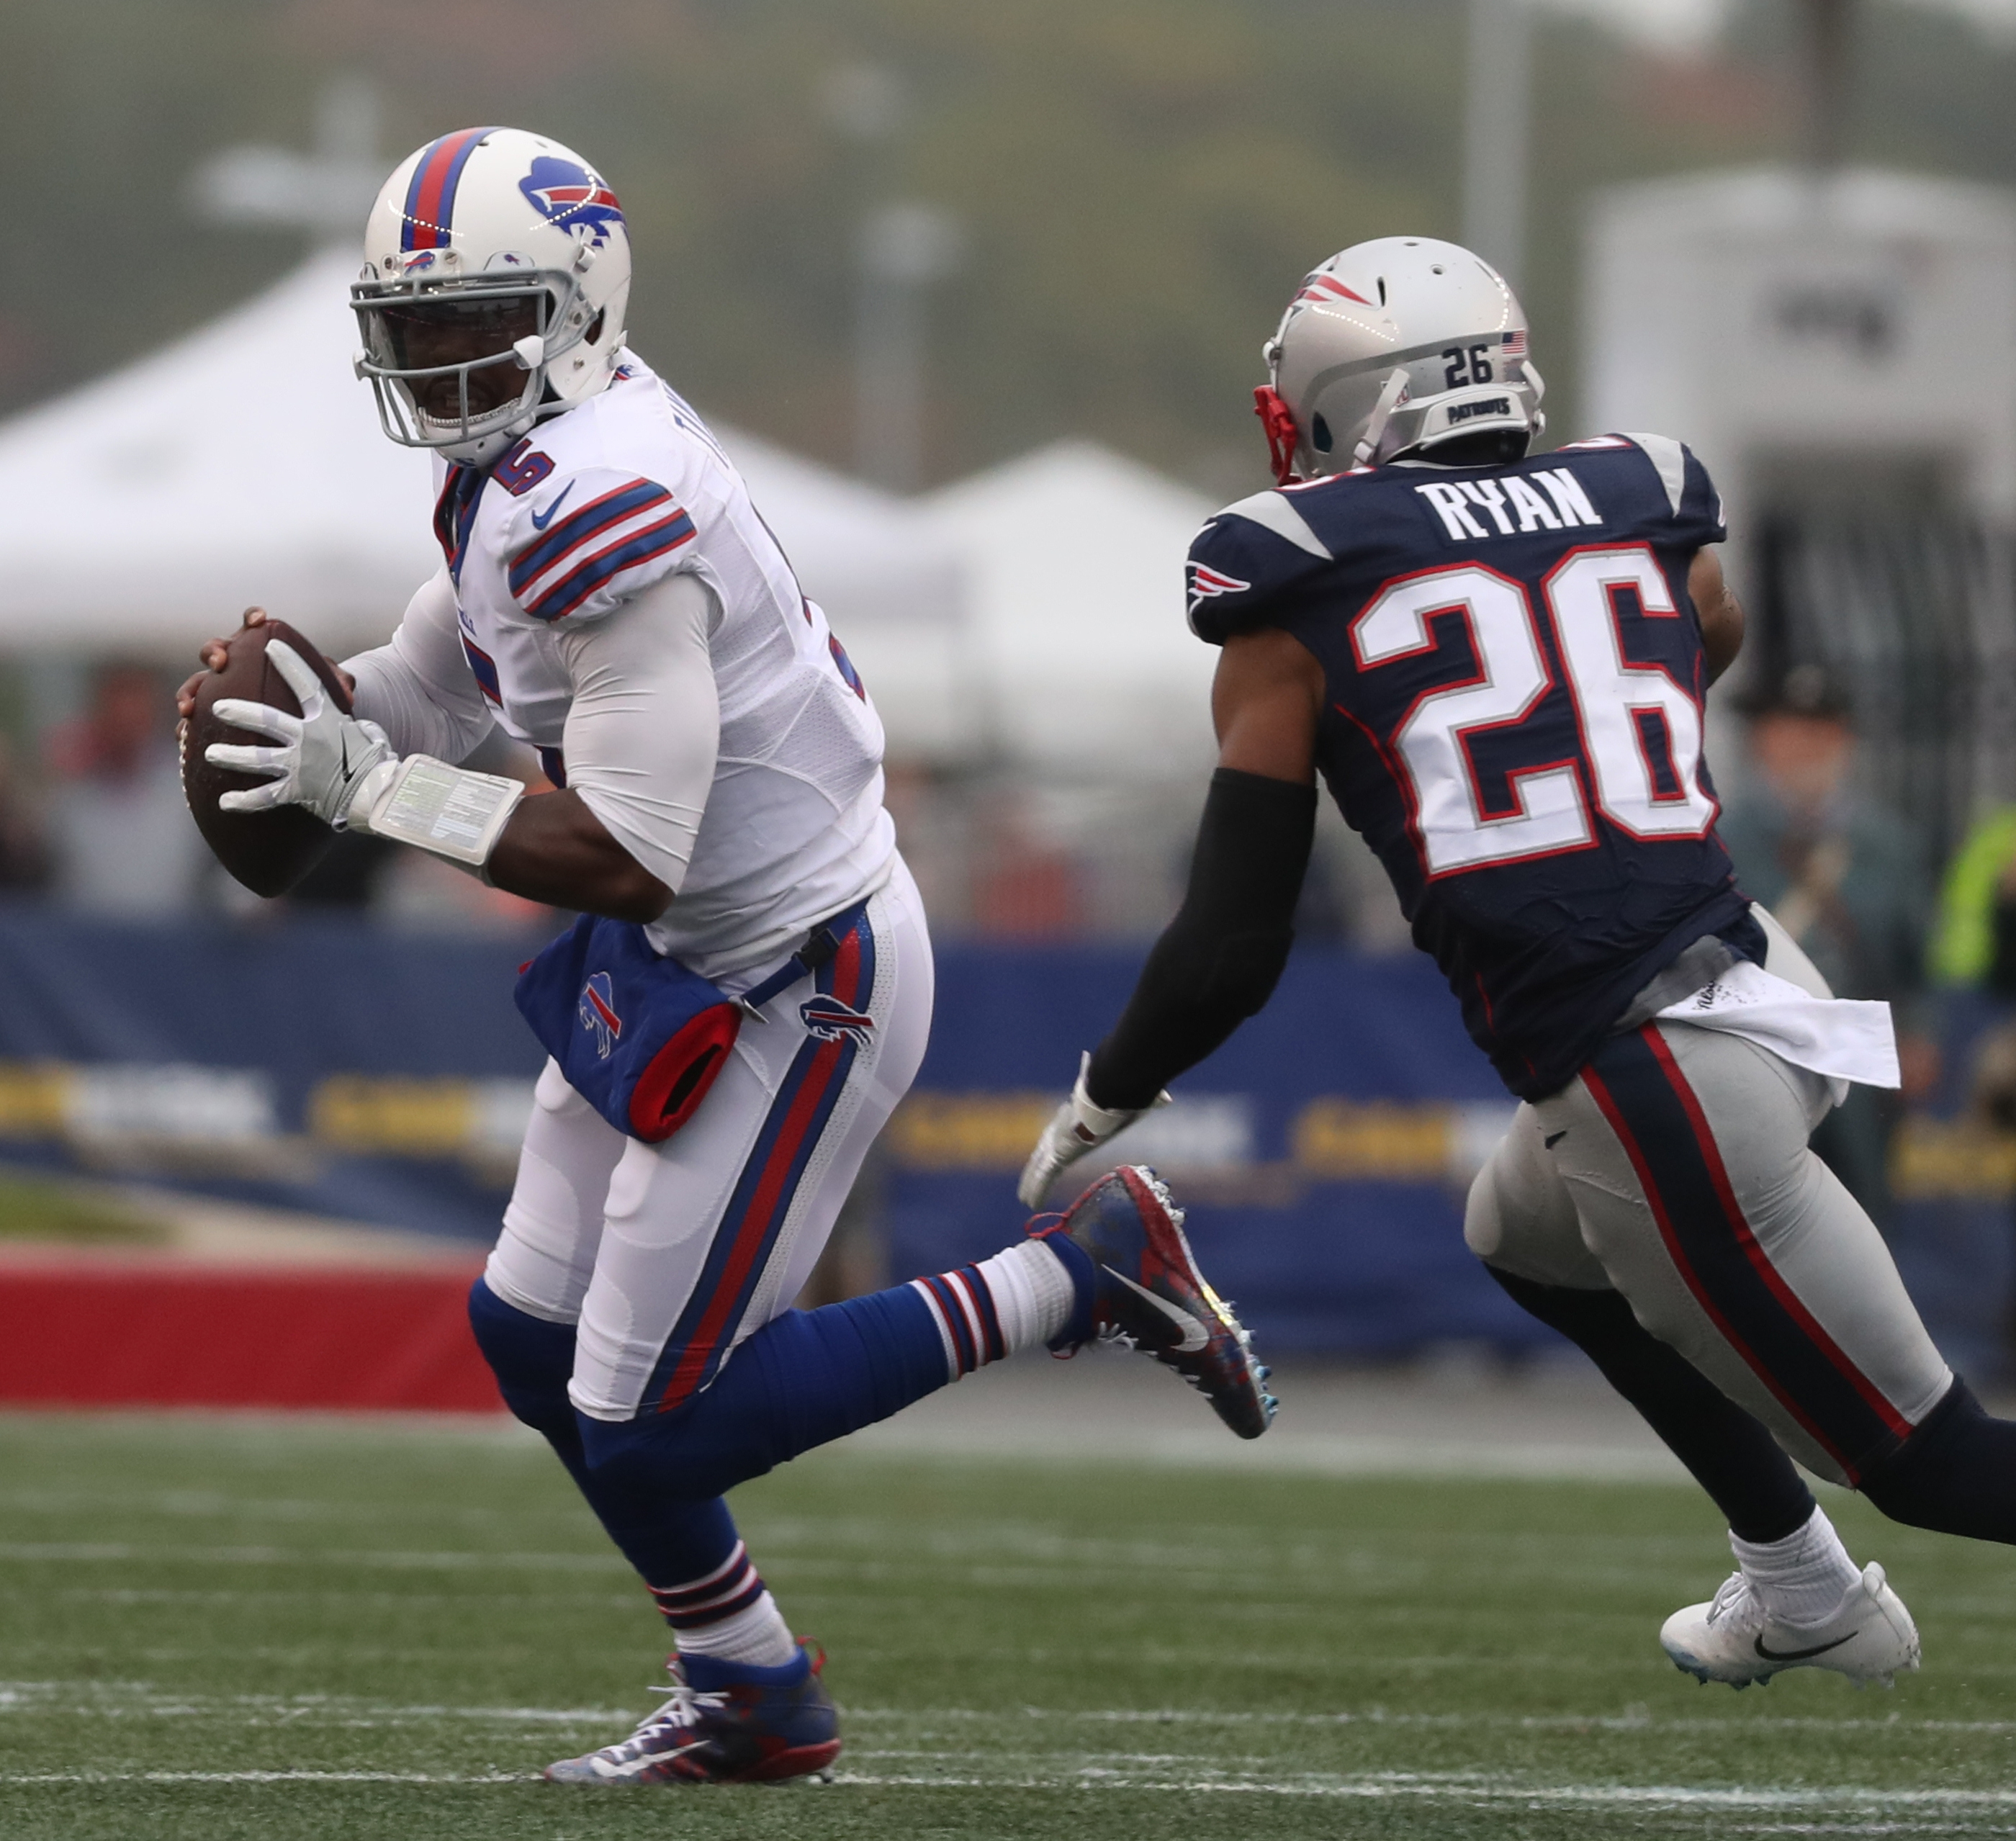 Buffalo Bills quarterback Tyrod Taylor (5) avoids a sack by New England Patriots cornerback Logan Ryan (26) in the first quarter.